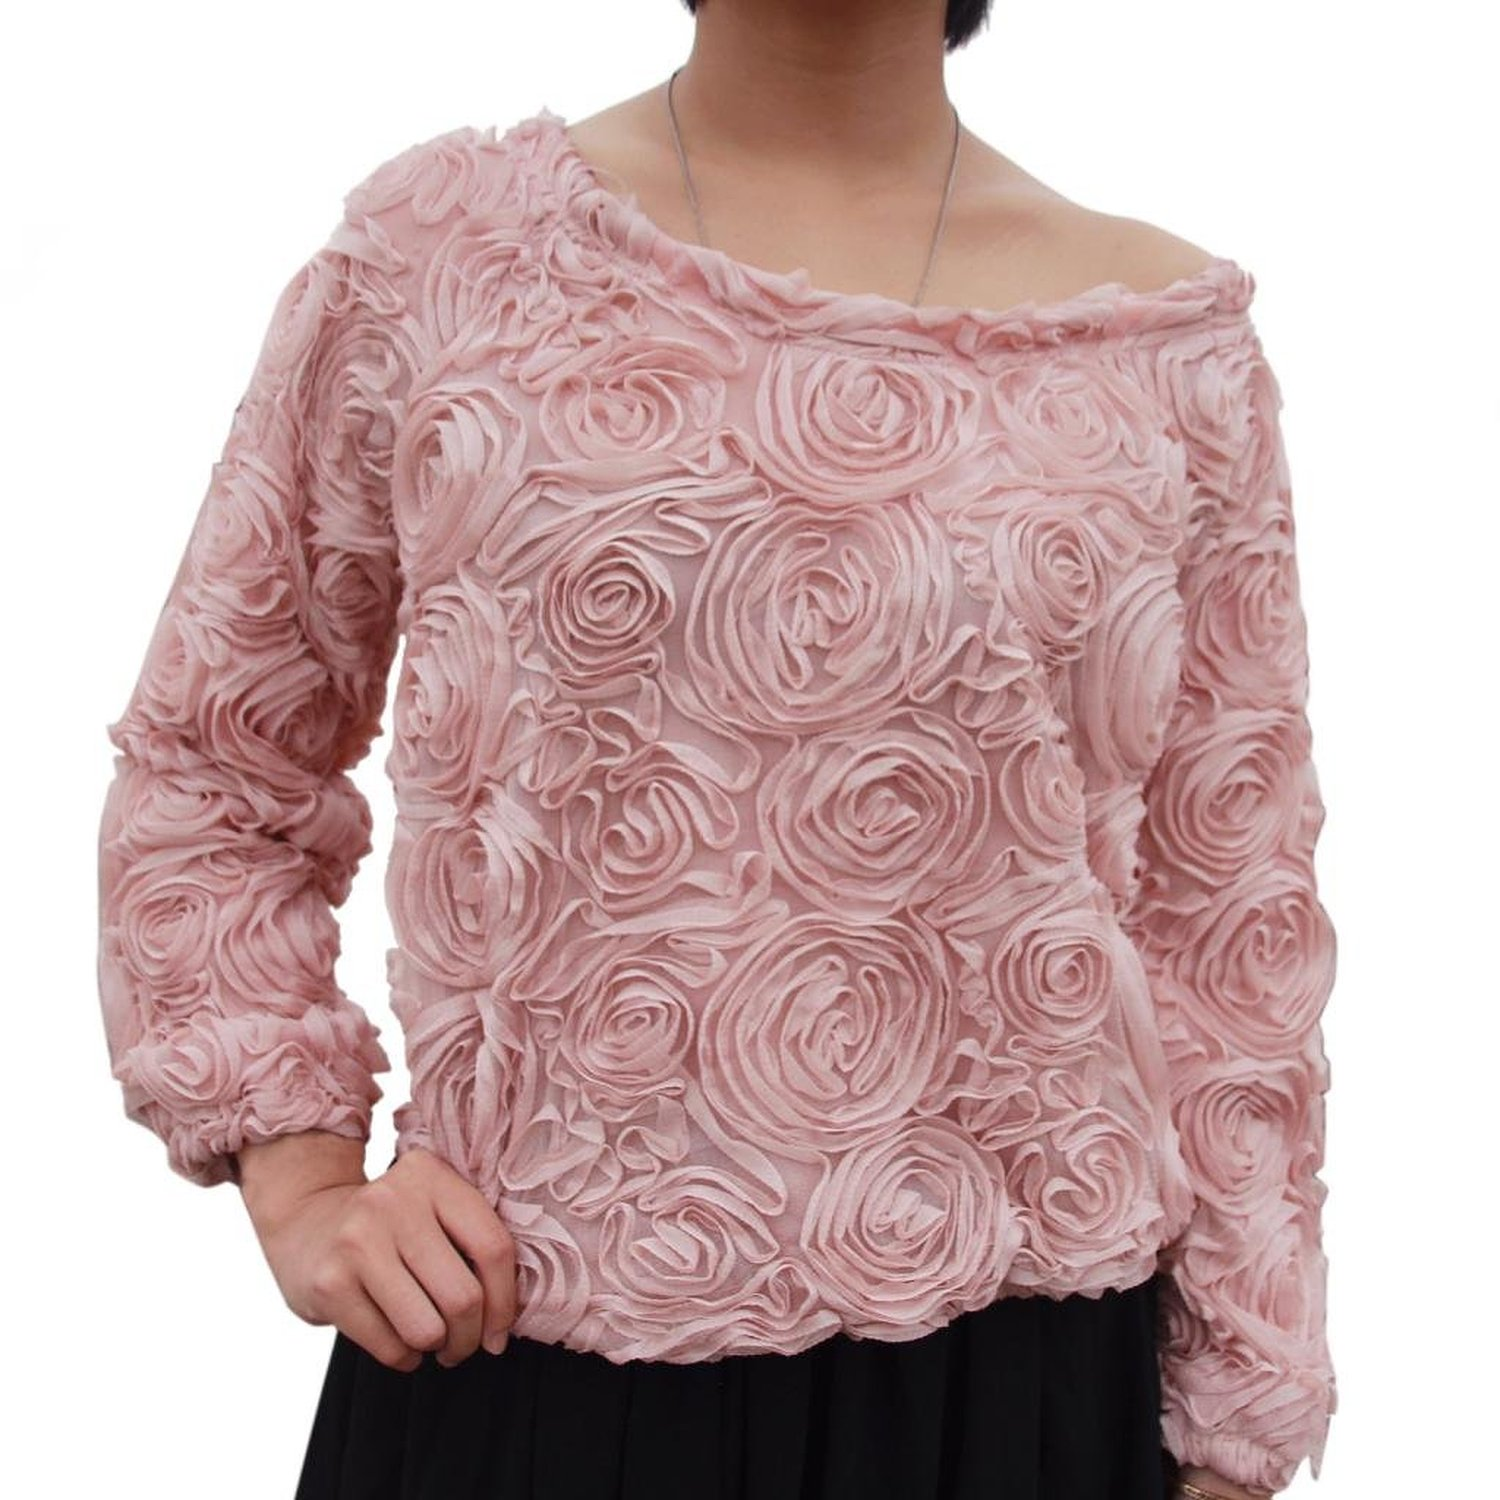 Lookbookstore damen frauen 3d mesh lace floral rose langarm top jumper pullover: amazon.de: bekleidung